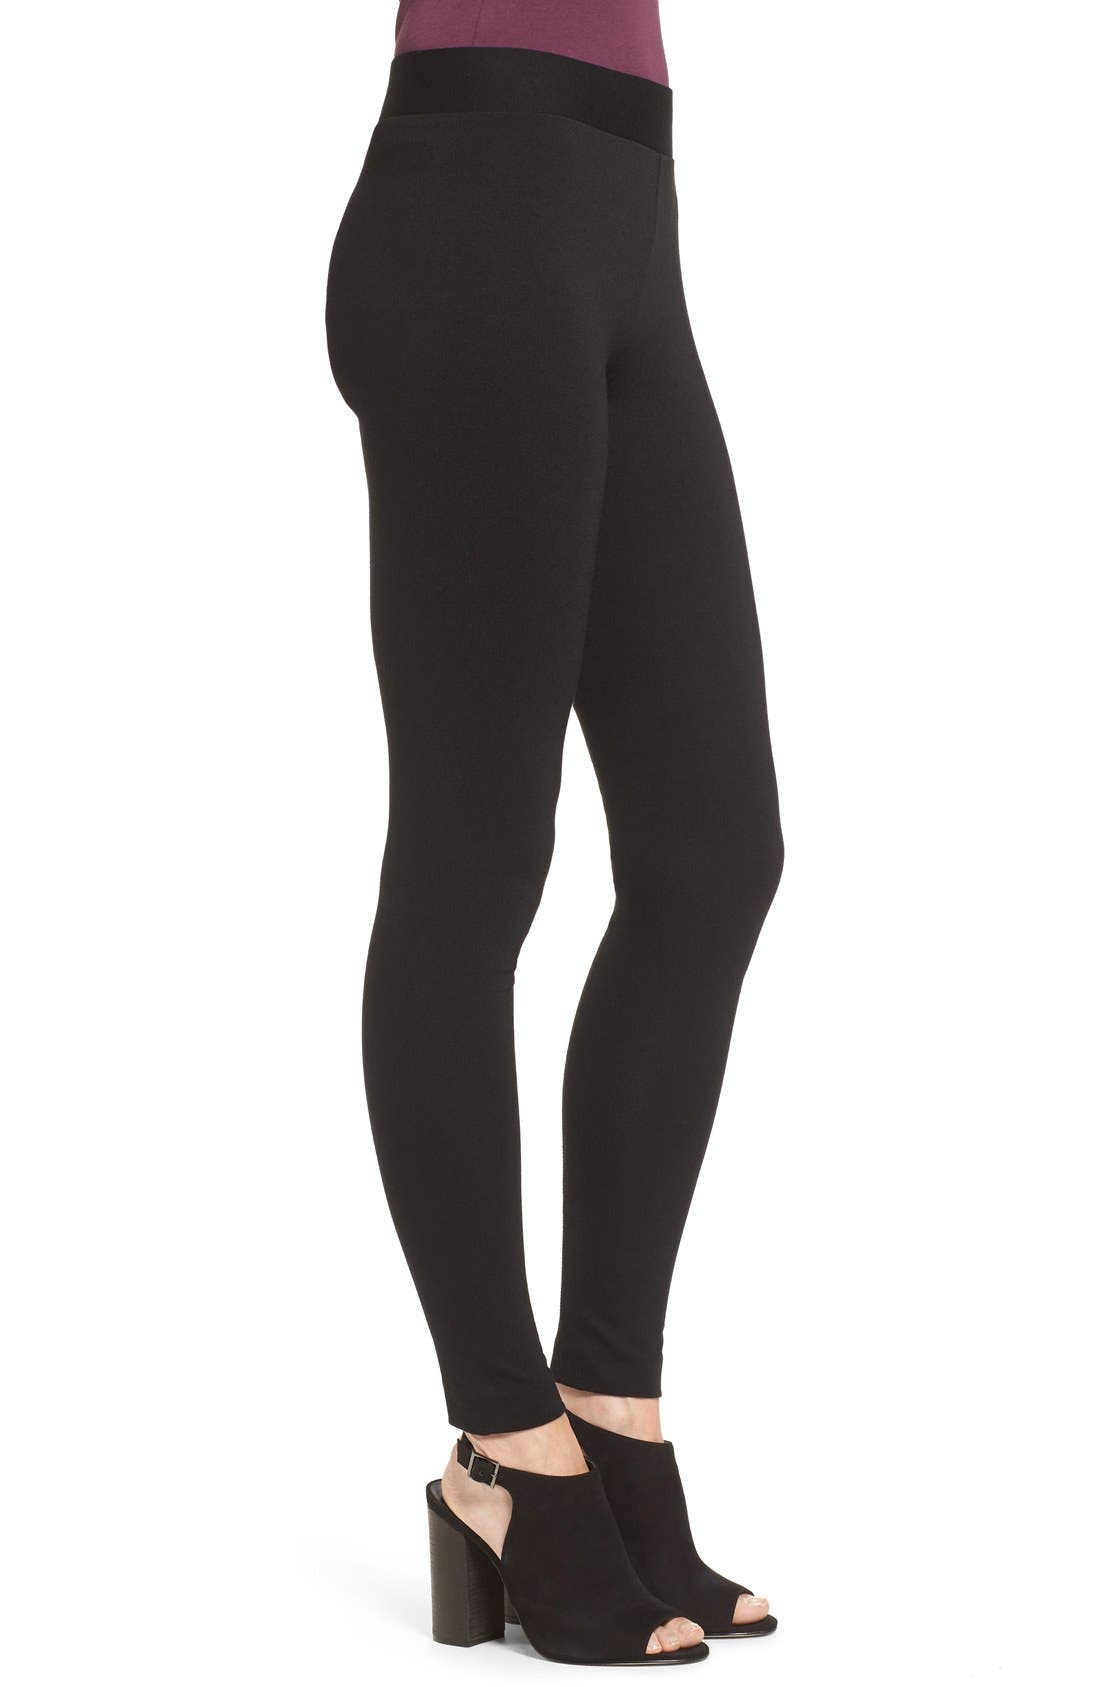 Alternate Image 3  - Two by Vince Camuto Seamed Back Leggings (Regular & Petite)